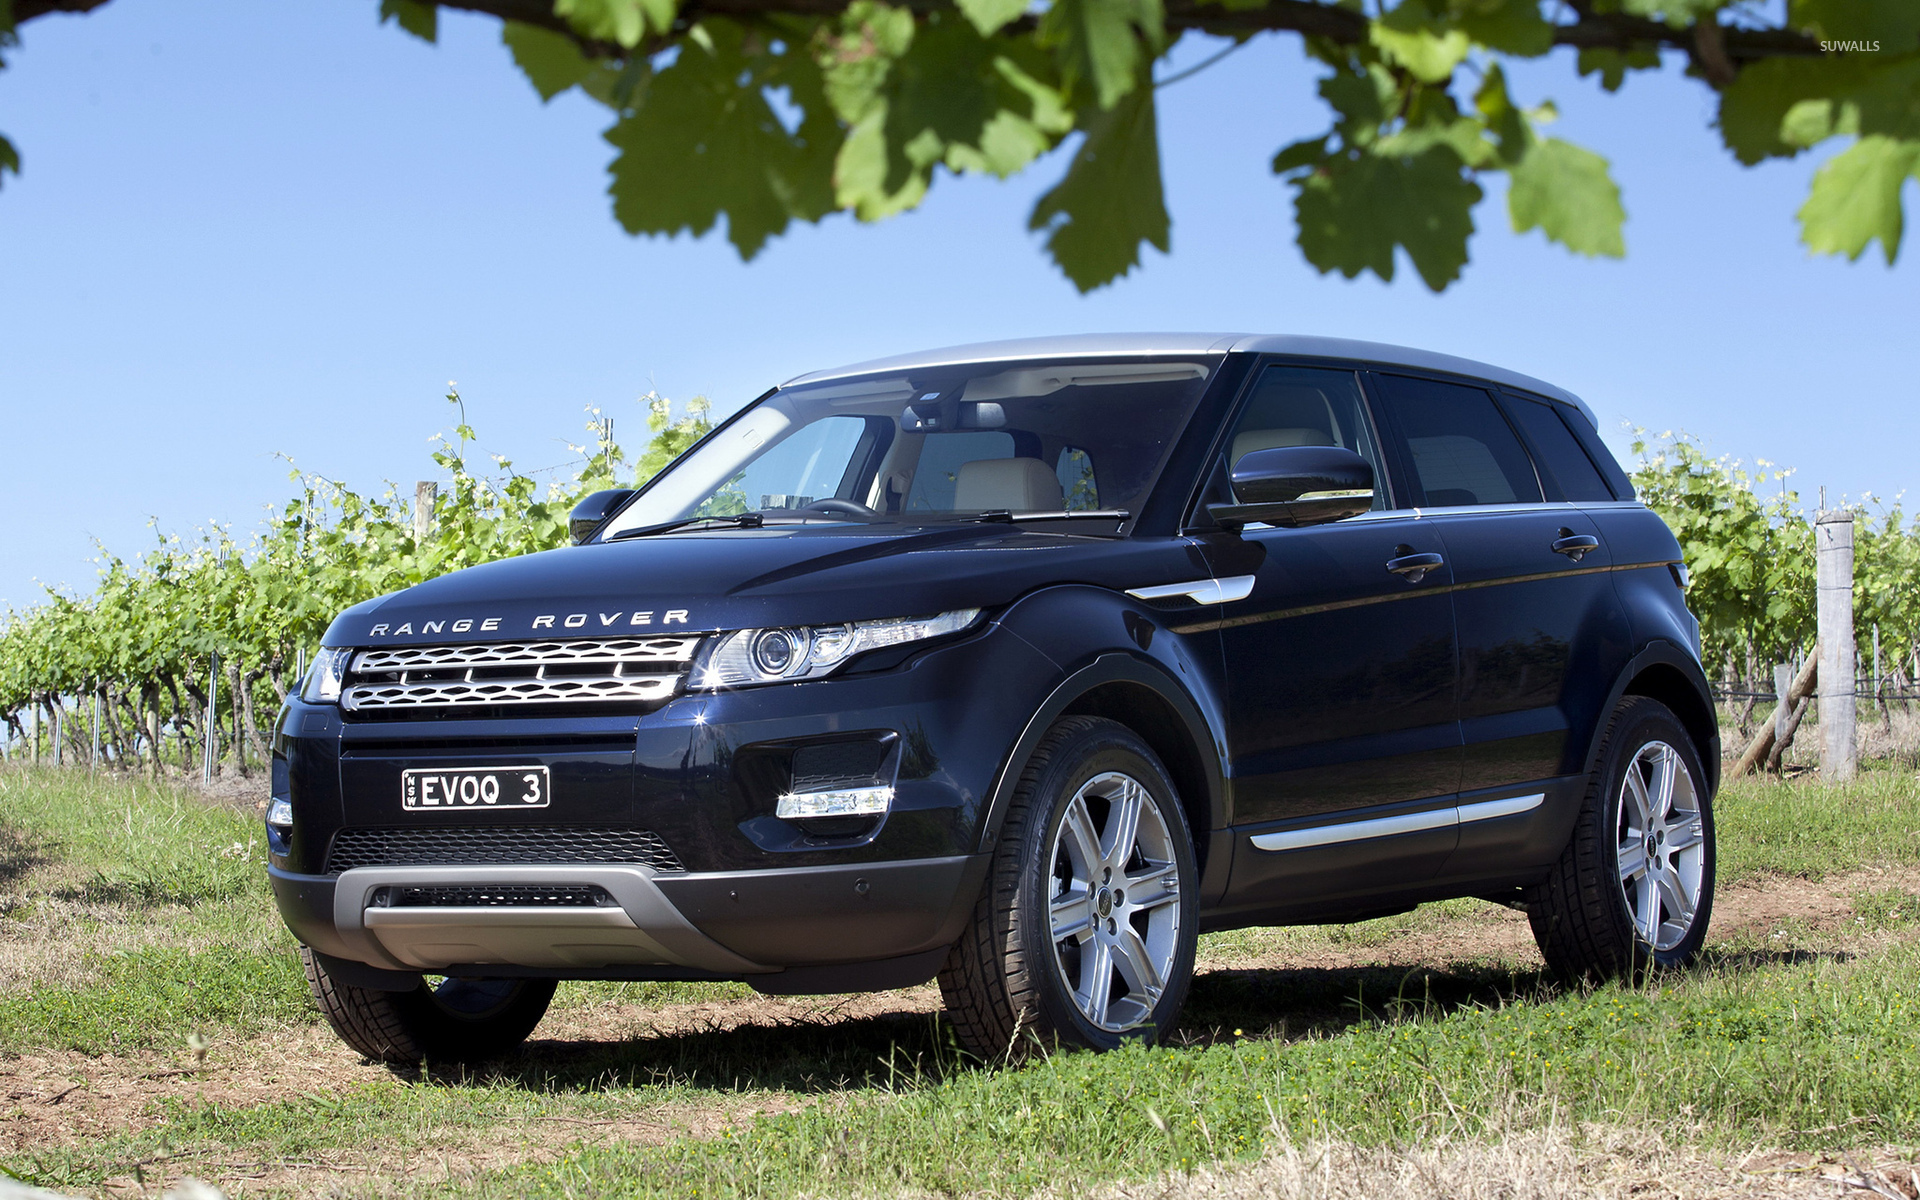 Beautiful Wallpaper High Resolution Range Rover - land-rover-range-rover-evoque-38514-1920x1200  Pictures_849835.jpg